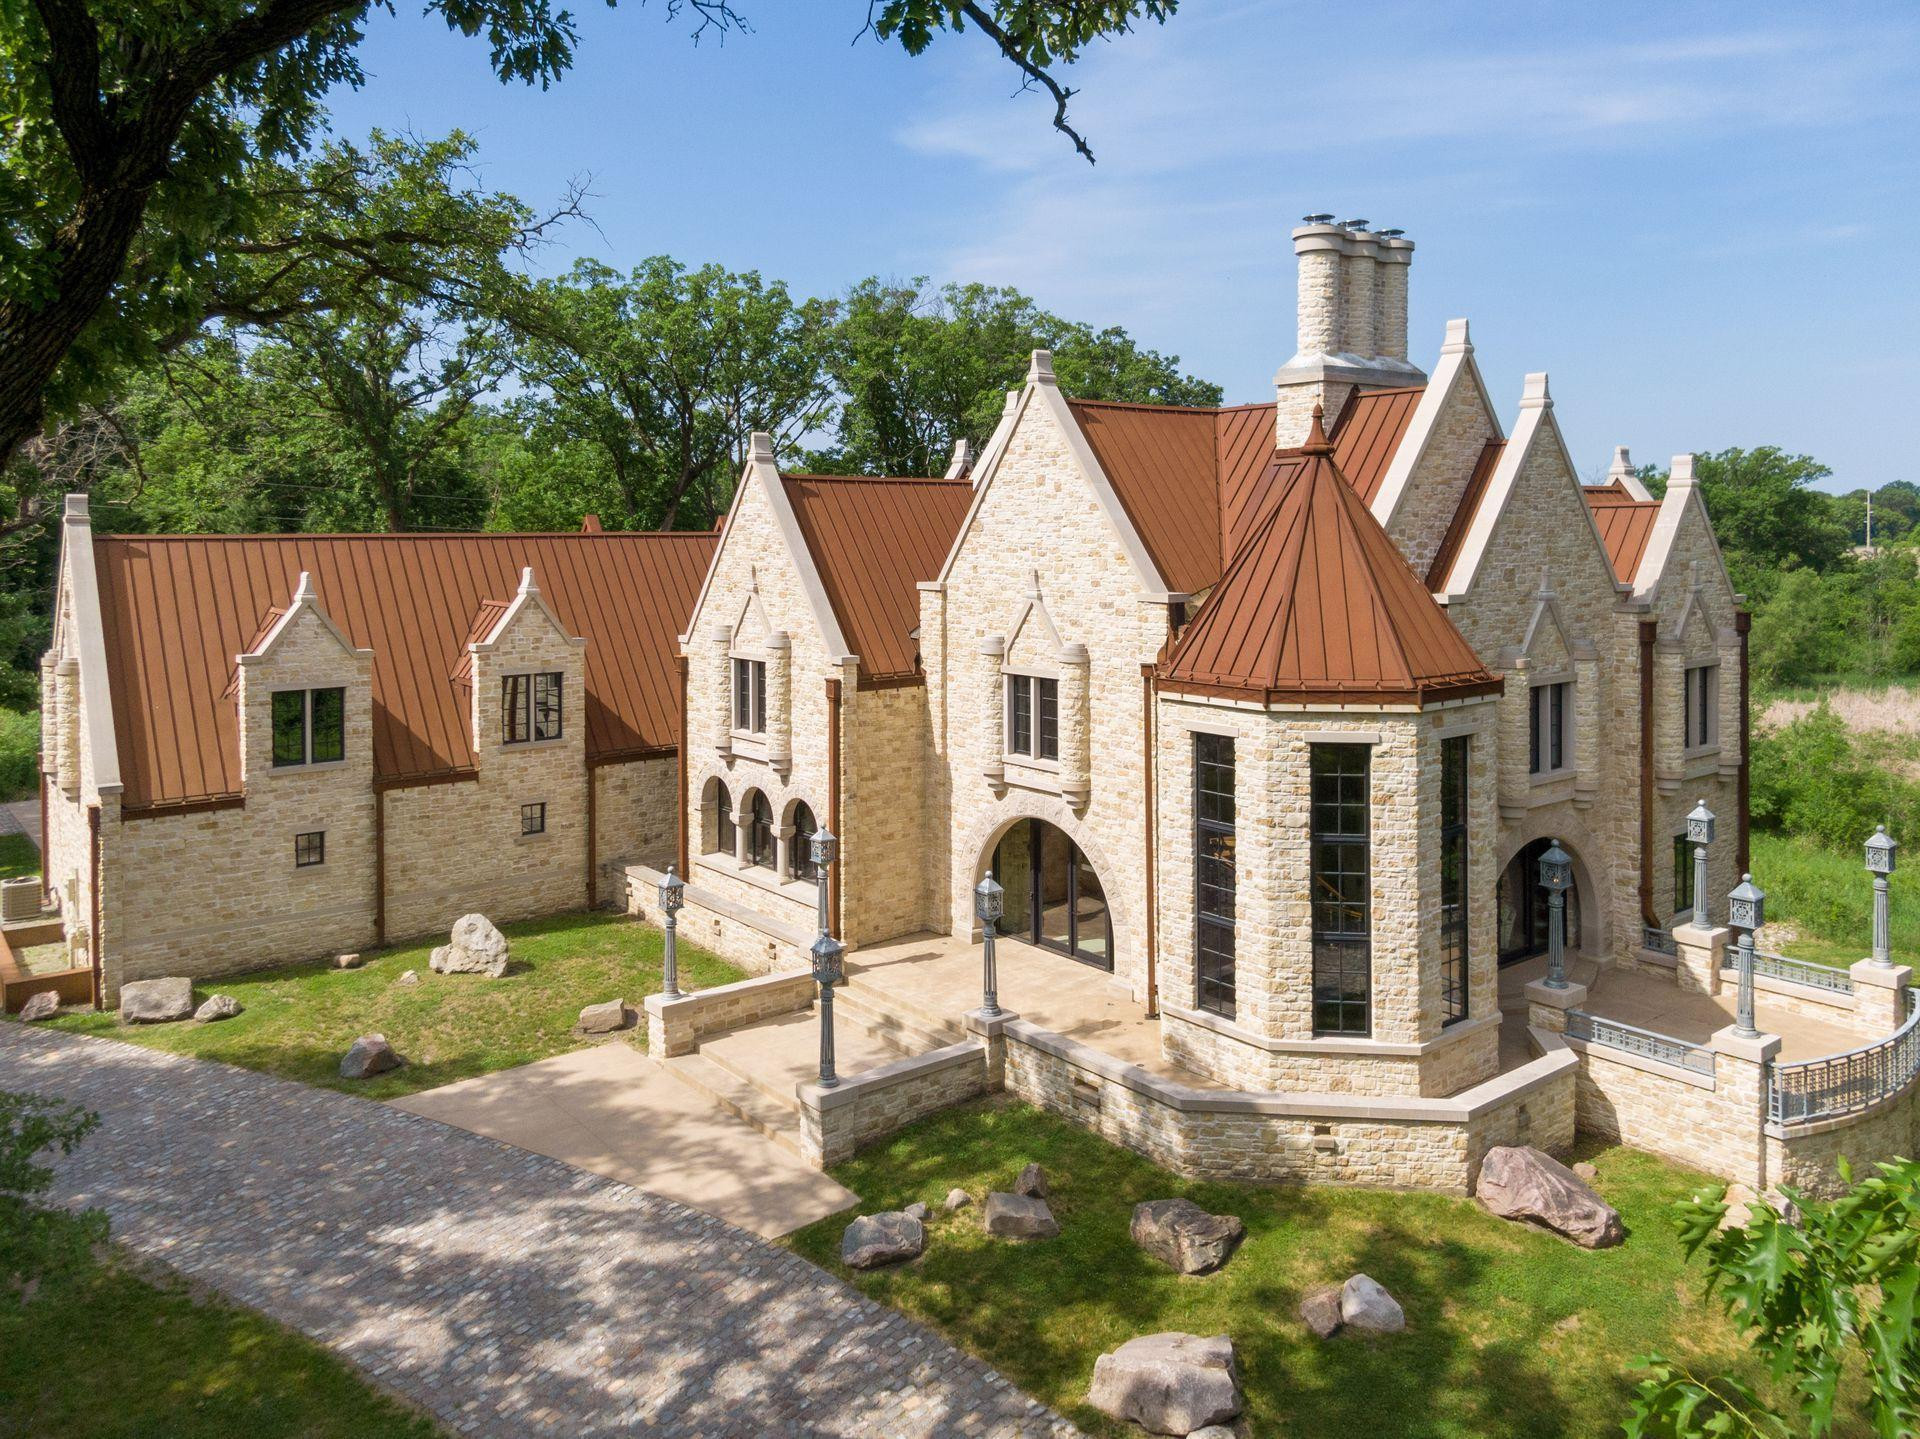 Situated on 3.37 acres in the coveted Orono countryside, Huntington Manor is a prestigious estate proudly designed by architect James McNeal and crafted by masonry artist Luke Busker, Masonry Builders, LLC.